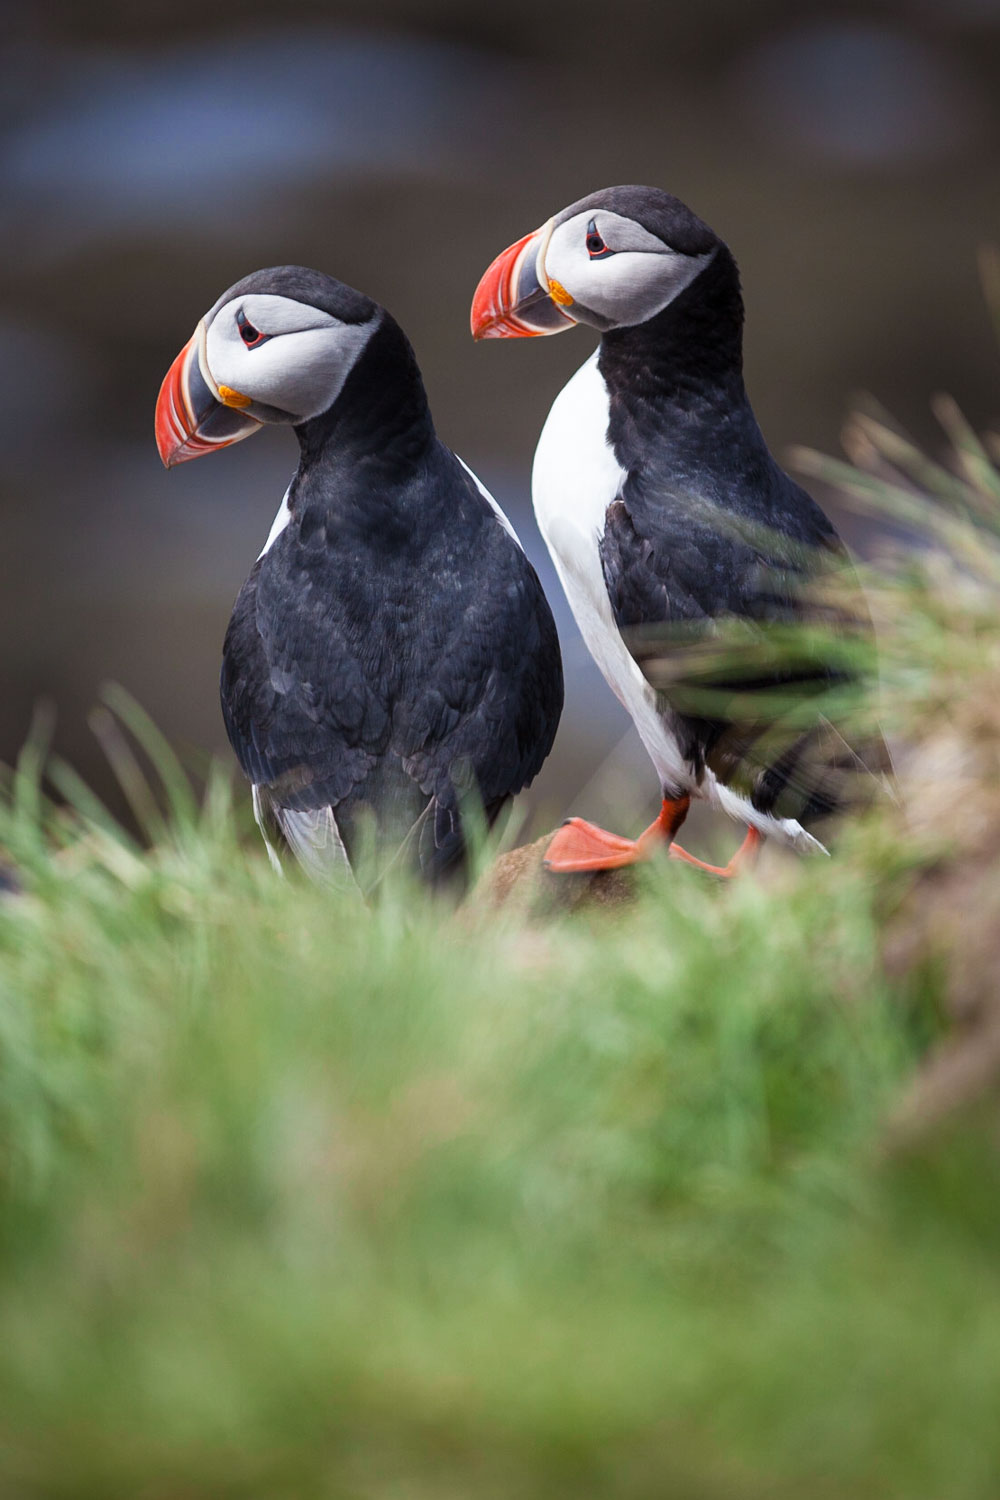 Puffins on the Latrabjarg Cliffs. The largest sea bird cliff in Europe.